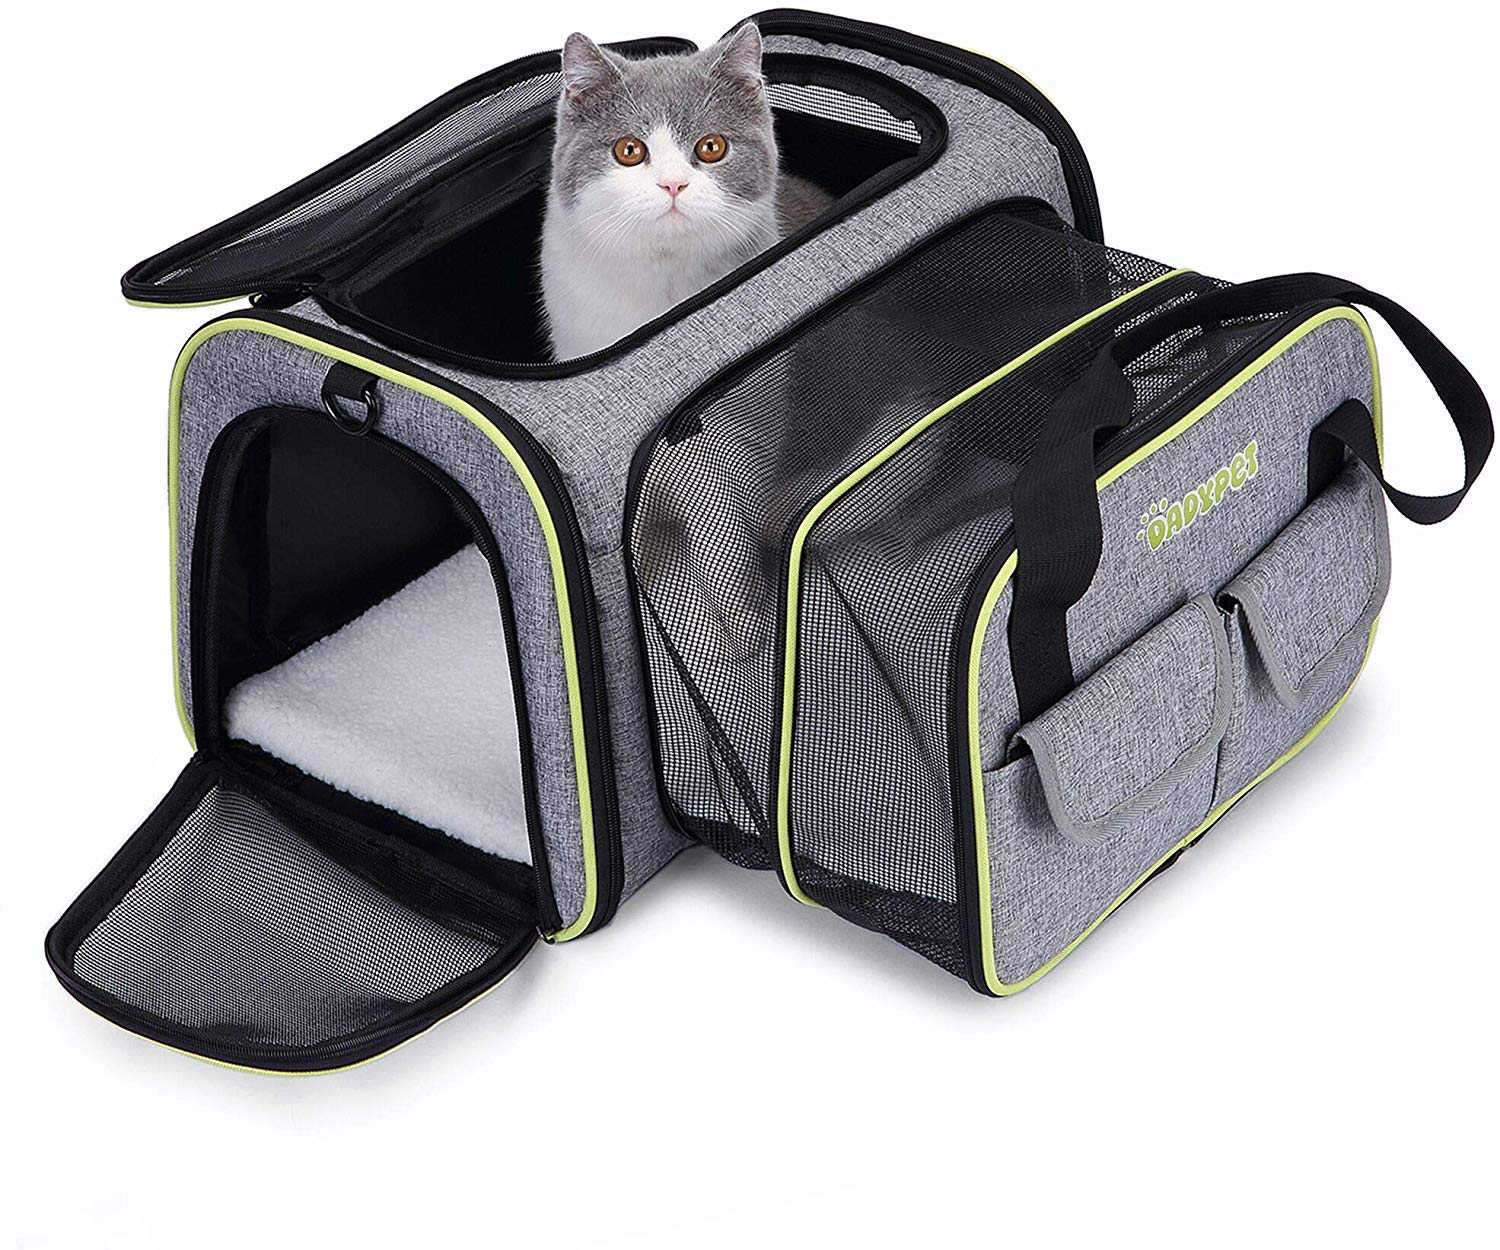 40% OFF DADYPET Pet carrier (45 * 33 * 28 cm)